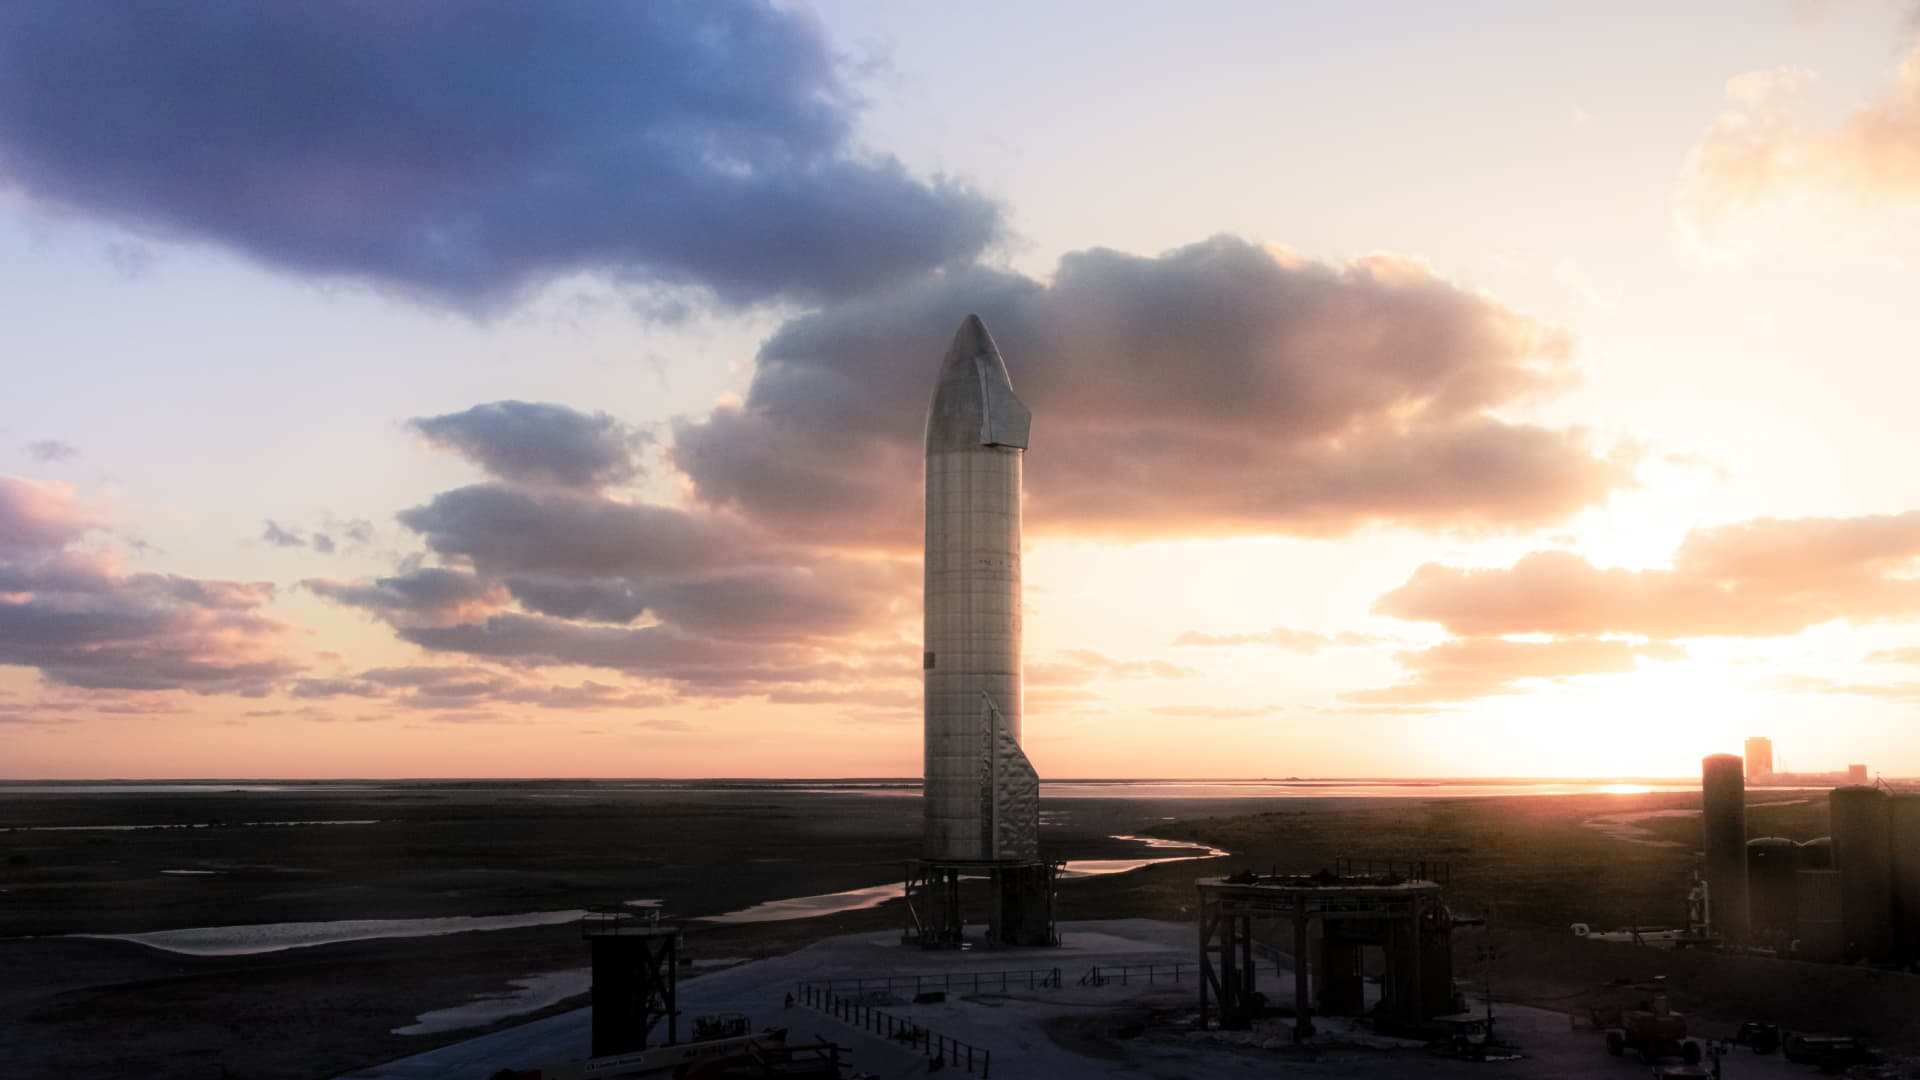 Starship prototype SN9 stands on the launchpad at sunset at SpaceX's development facility in Boca Chica, Texas.